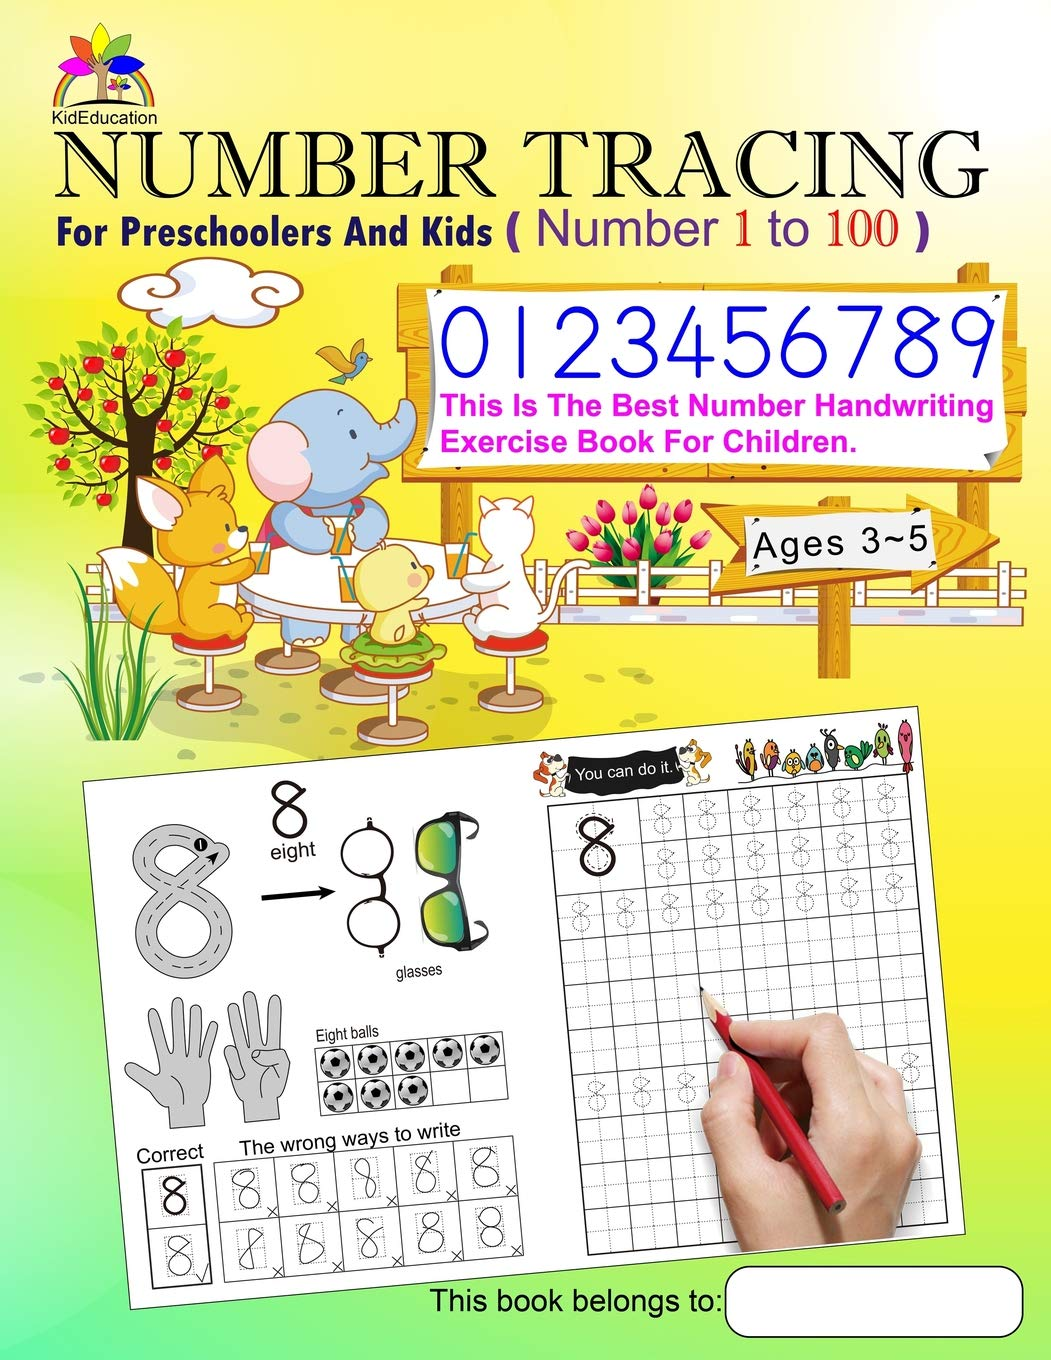 Number Tracing Book For Preschoolers And Kids Ages 3-5 Number 1 to